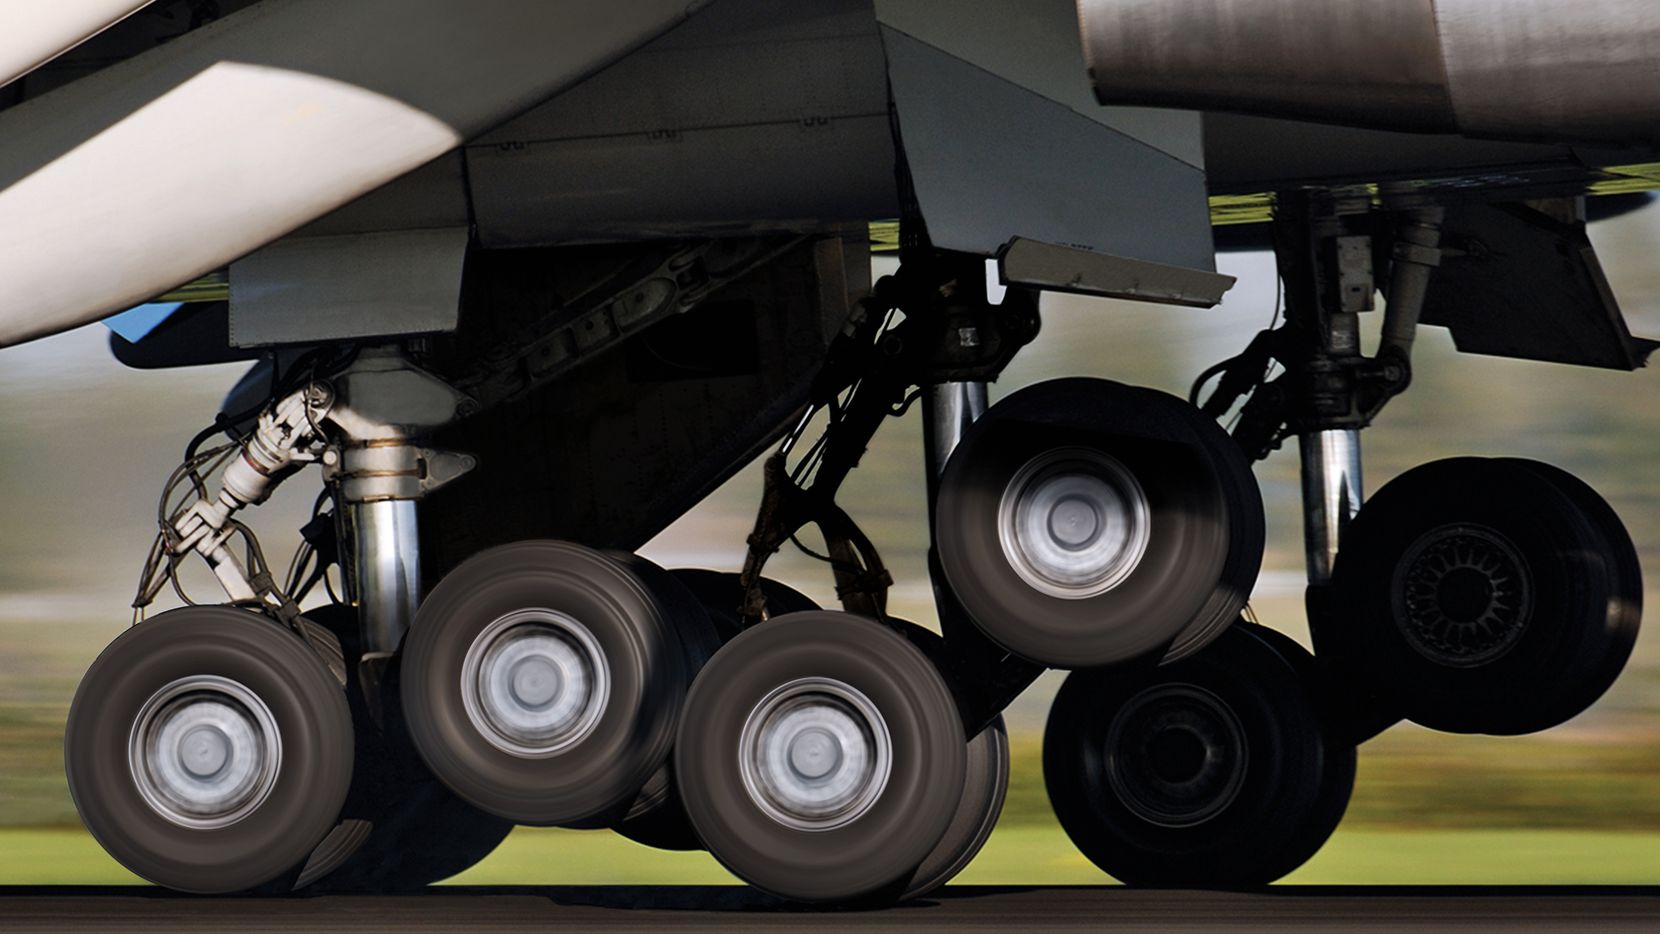 Collins Aerospace's landing gear business serves military customers such as Lockheed Martin, Northrup Grumman and Boeing.